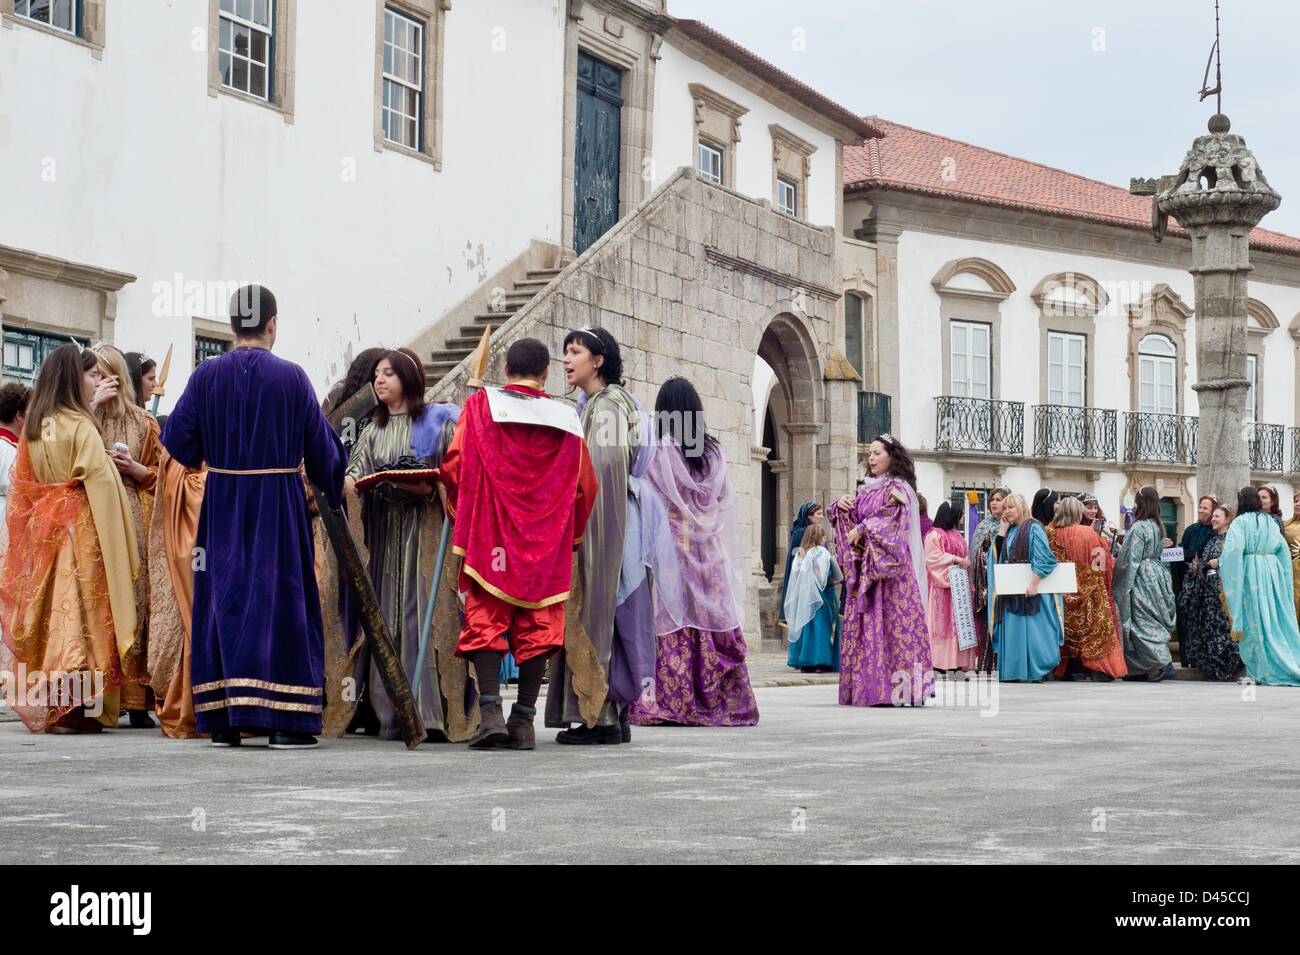 Vila de Conde, Portugal - 3 March 2013: people in traditional costumes  during the celebration of the third Sunday - Stock Image